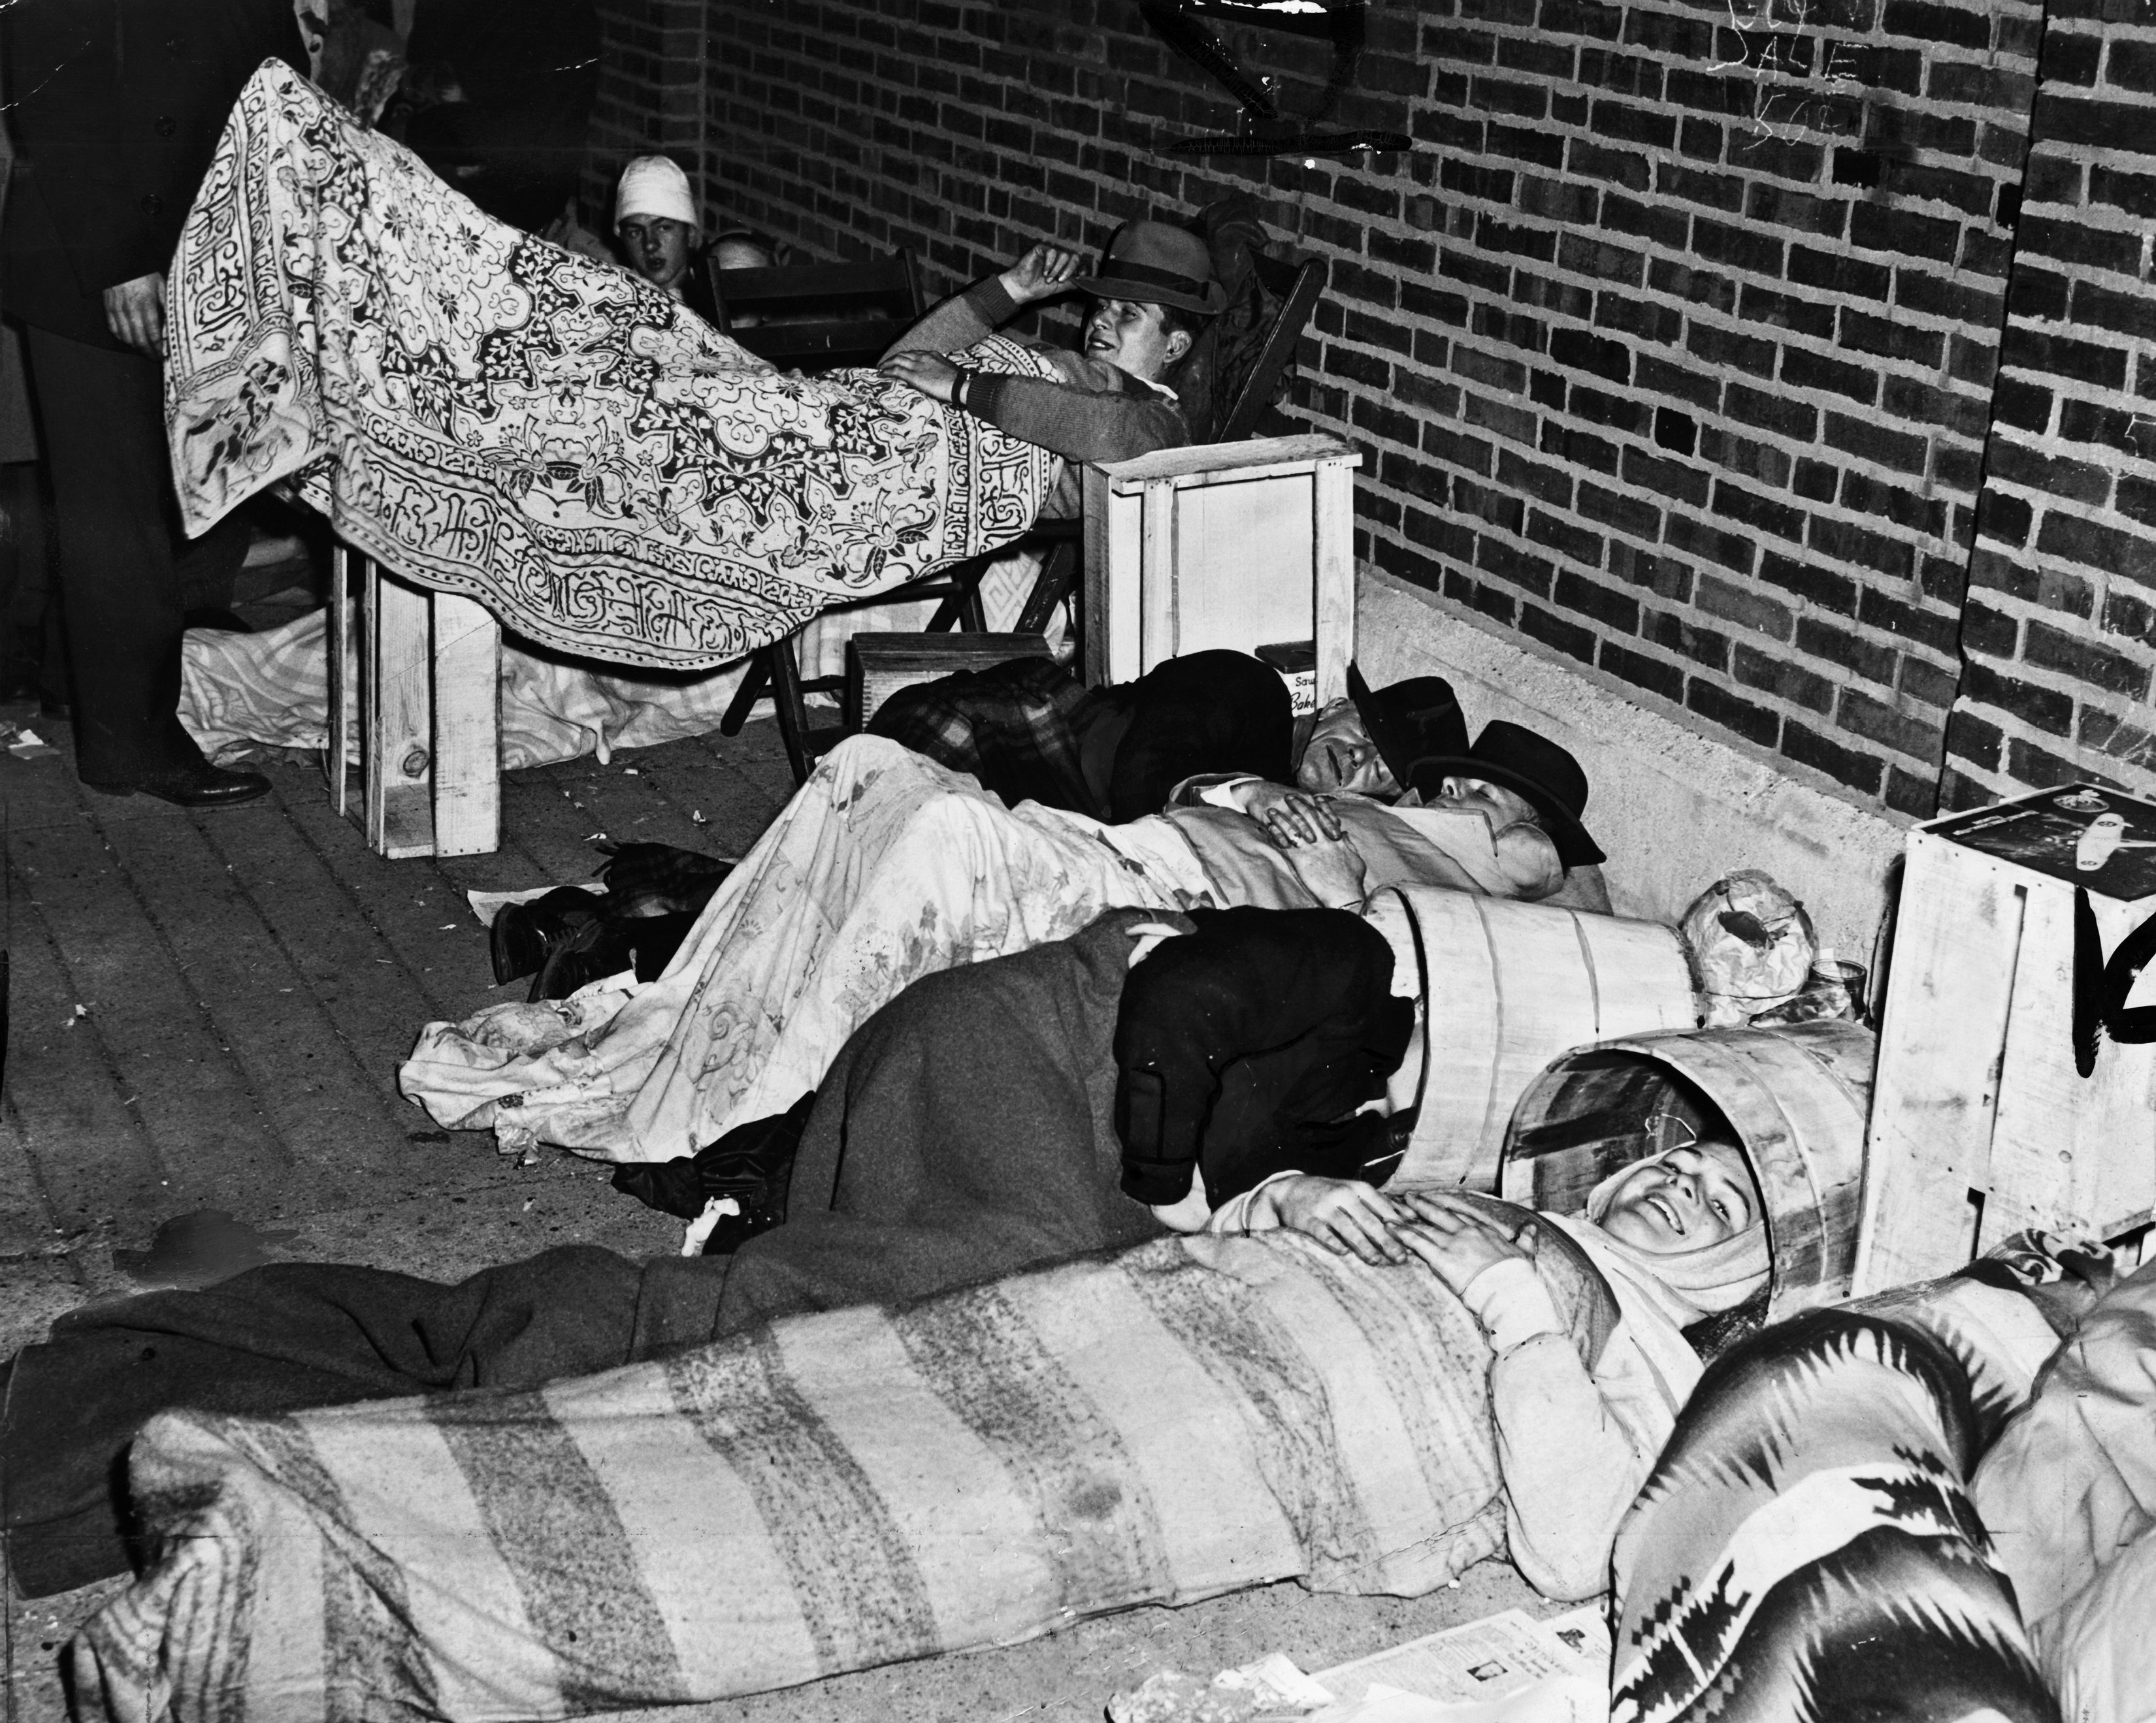 In this 1945 photo, fans rest as they camp out overnight for bleacher tickets for the World Series baseball games between the Chicago White Sox and the Chicago Cubs at Wrigley Field in Chicago. Some fans used tubs and baskets to keep the rain off their fa